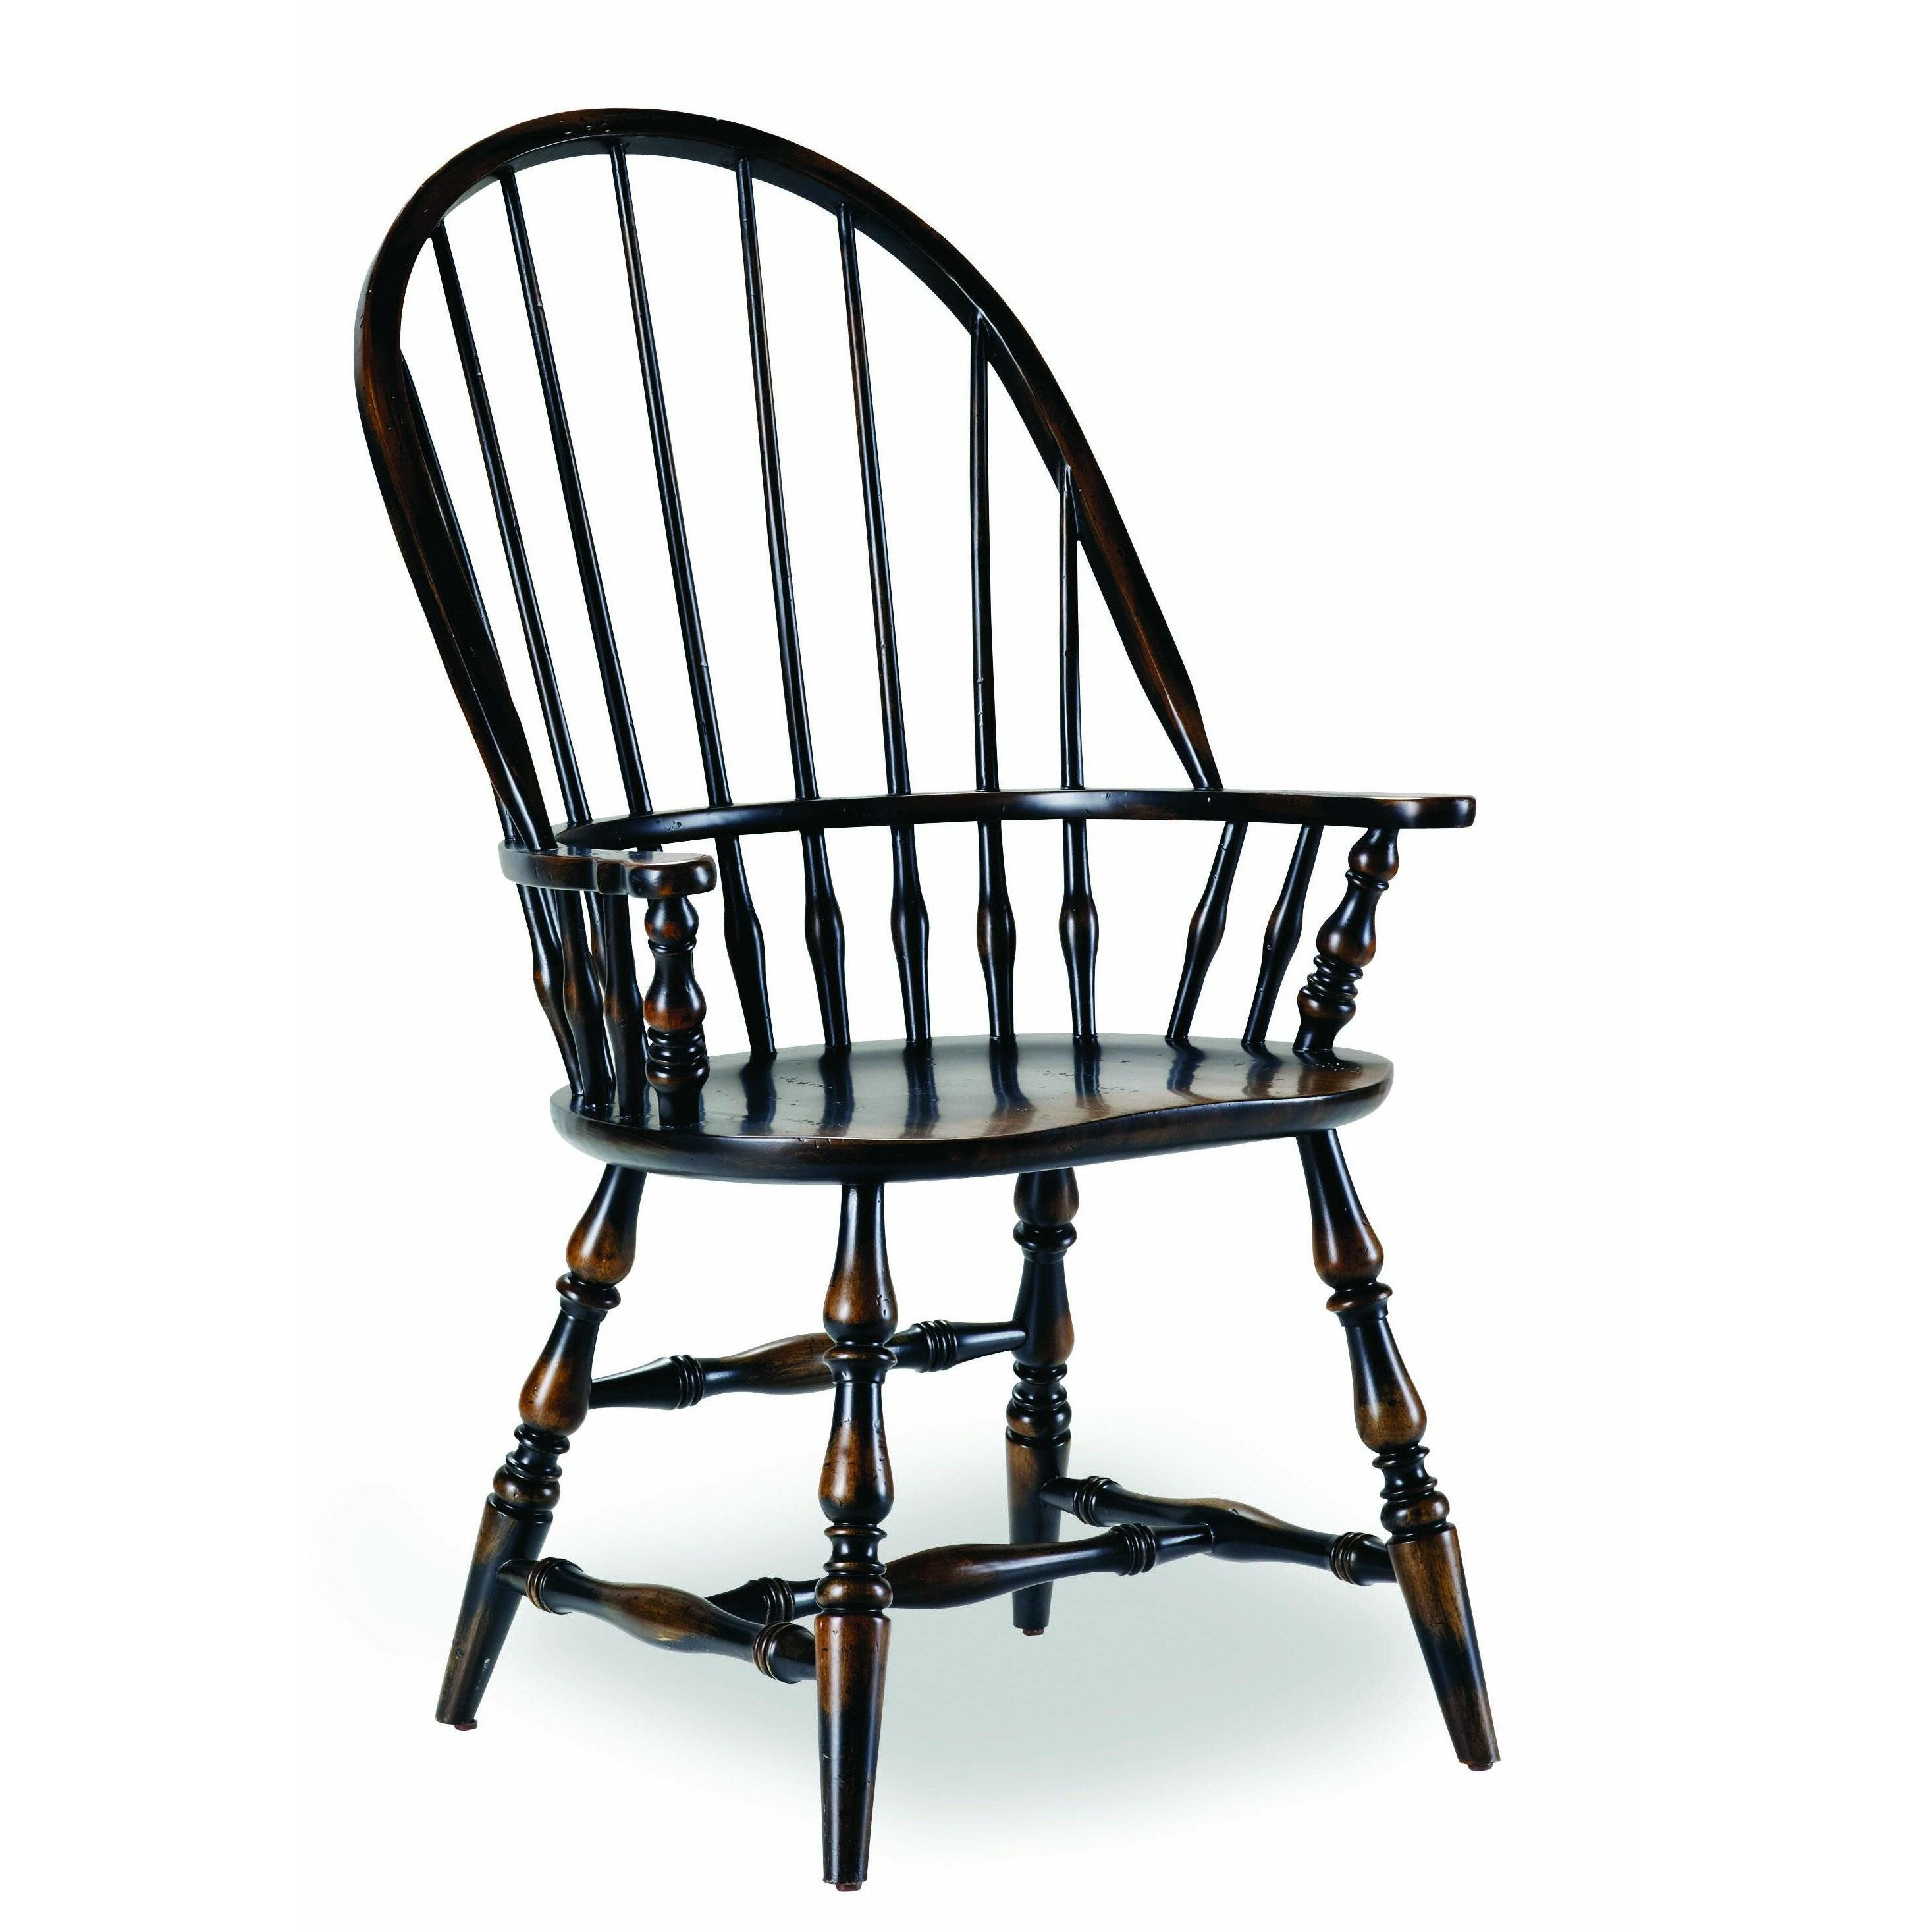 from Willie dating windsor chairs